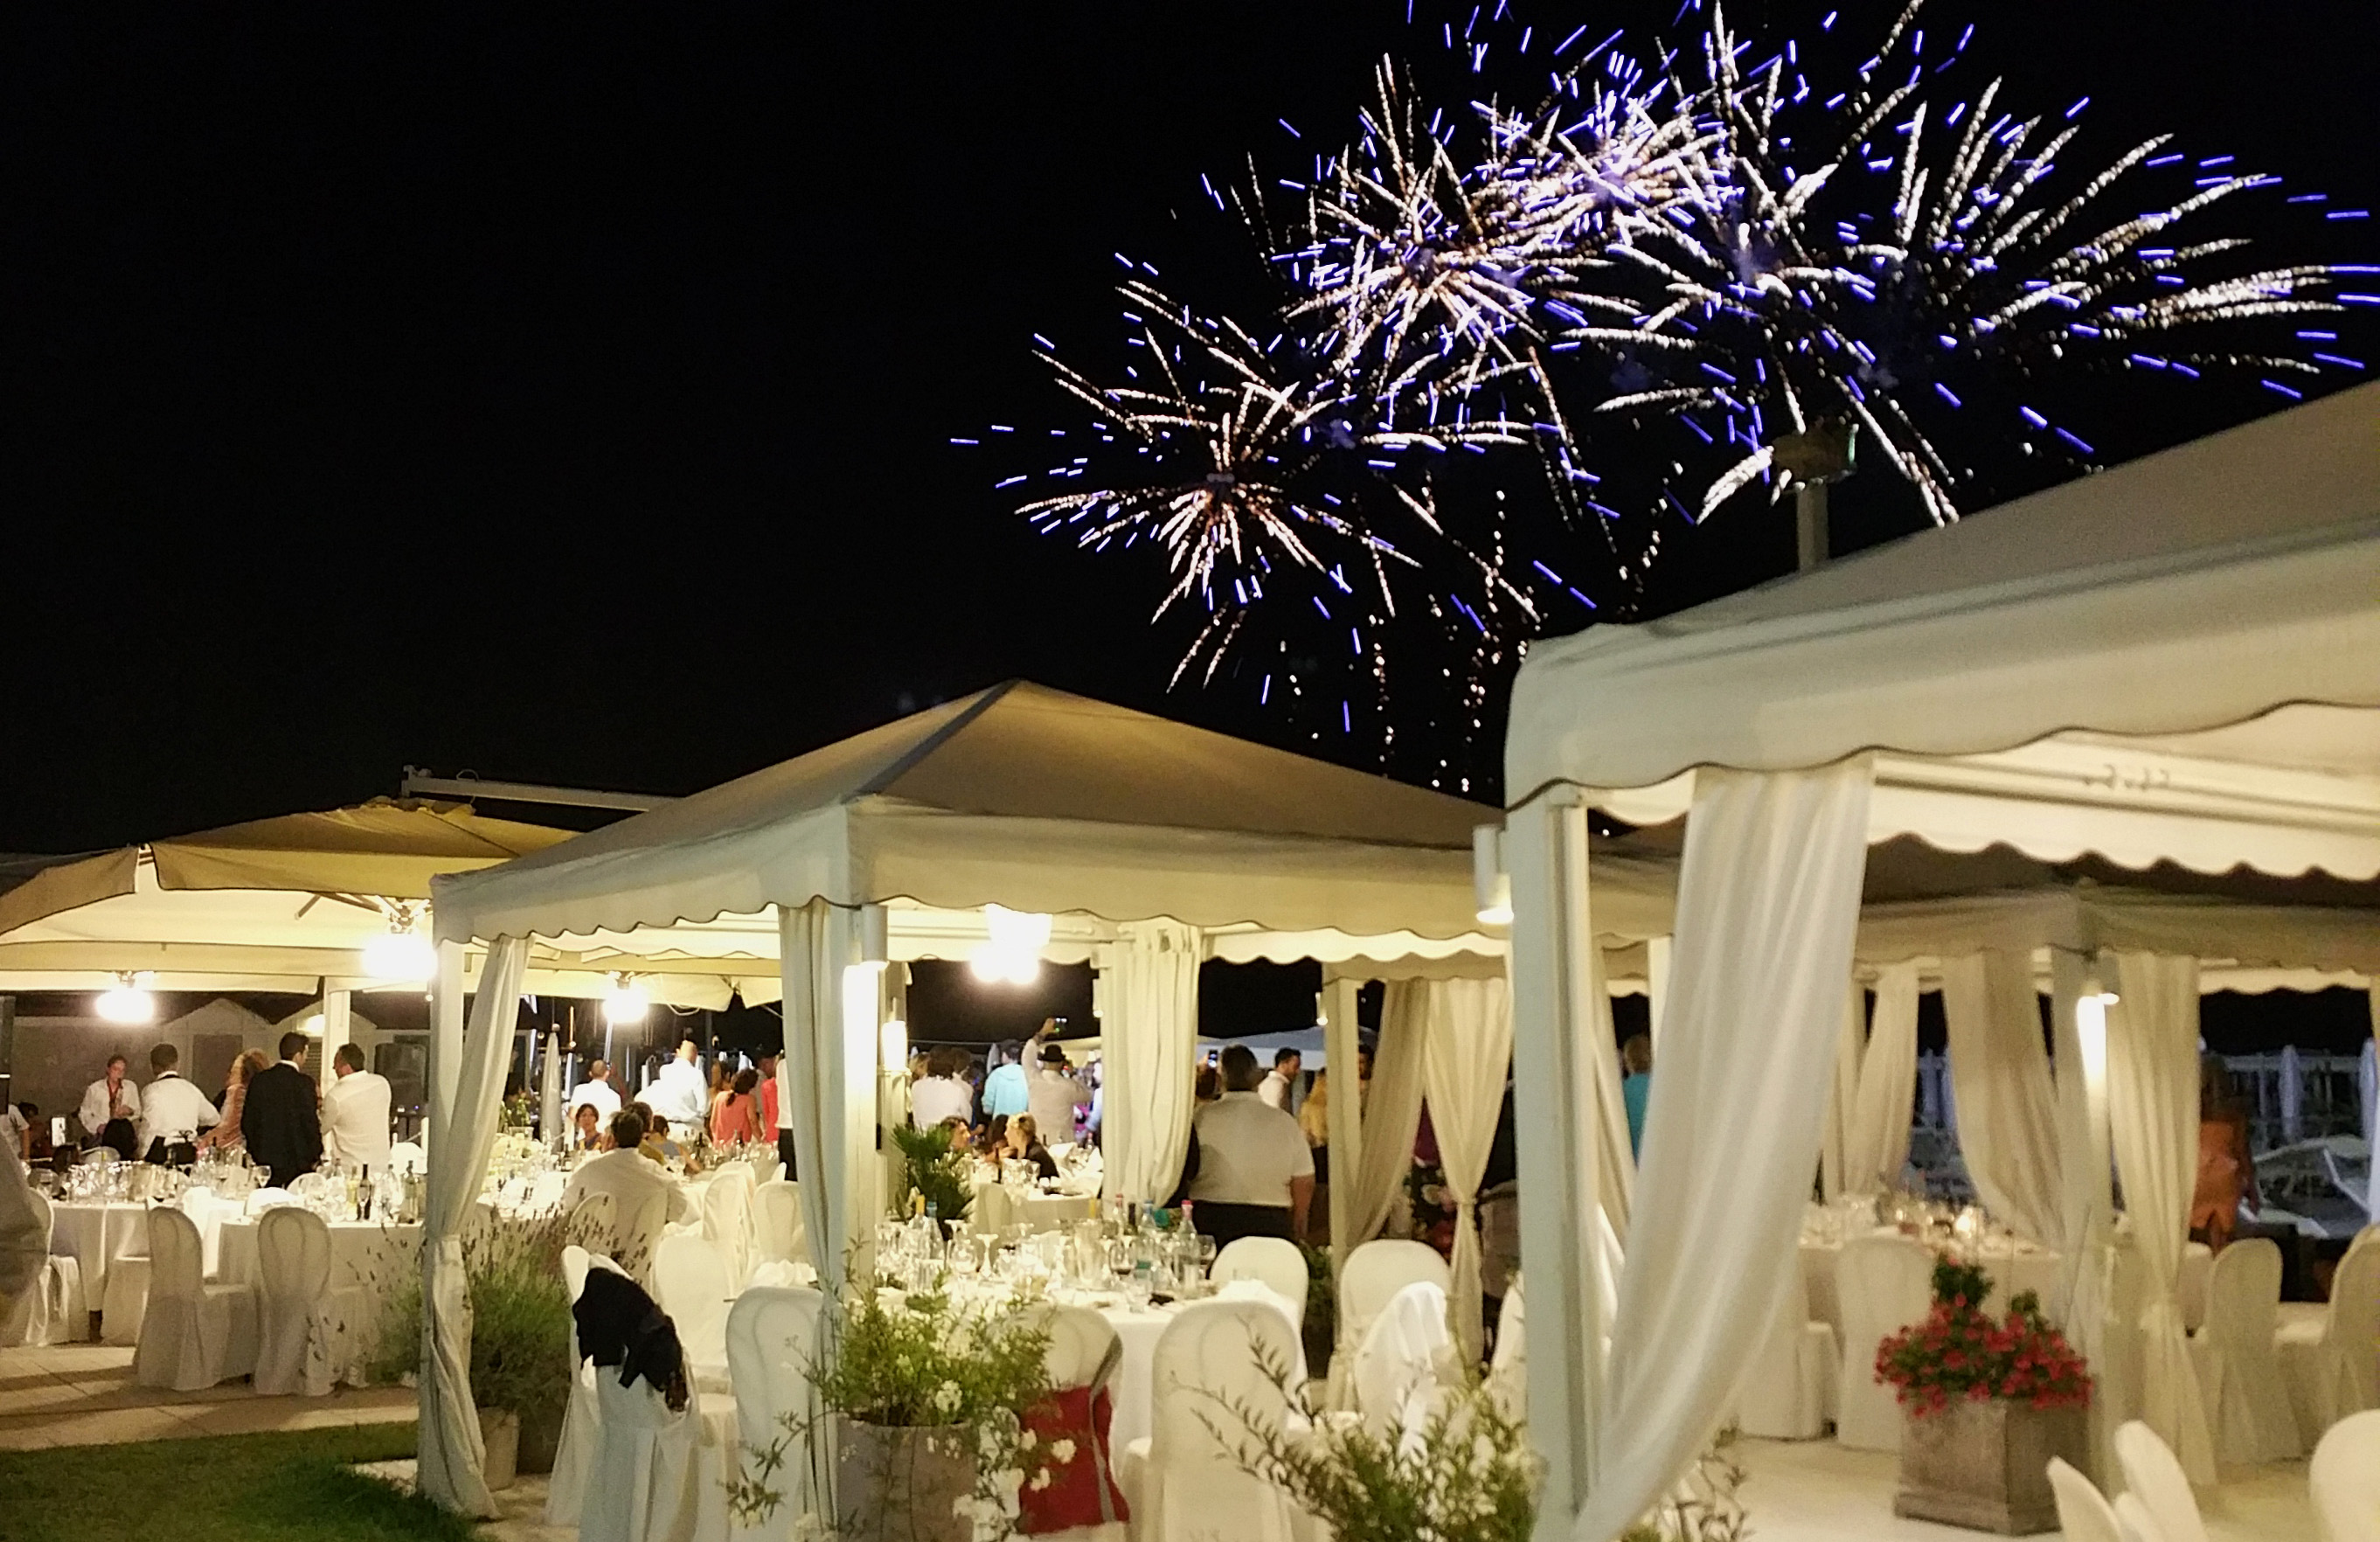 Matrimonio In Spiaggia : Matrimonio in spiaggia atlantic catering